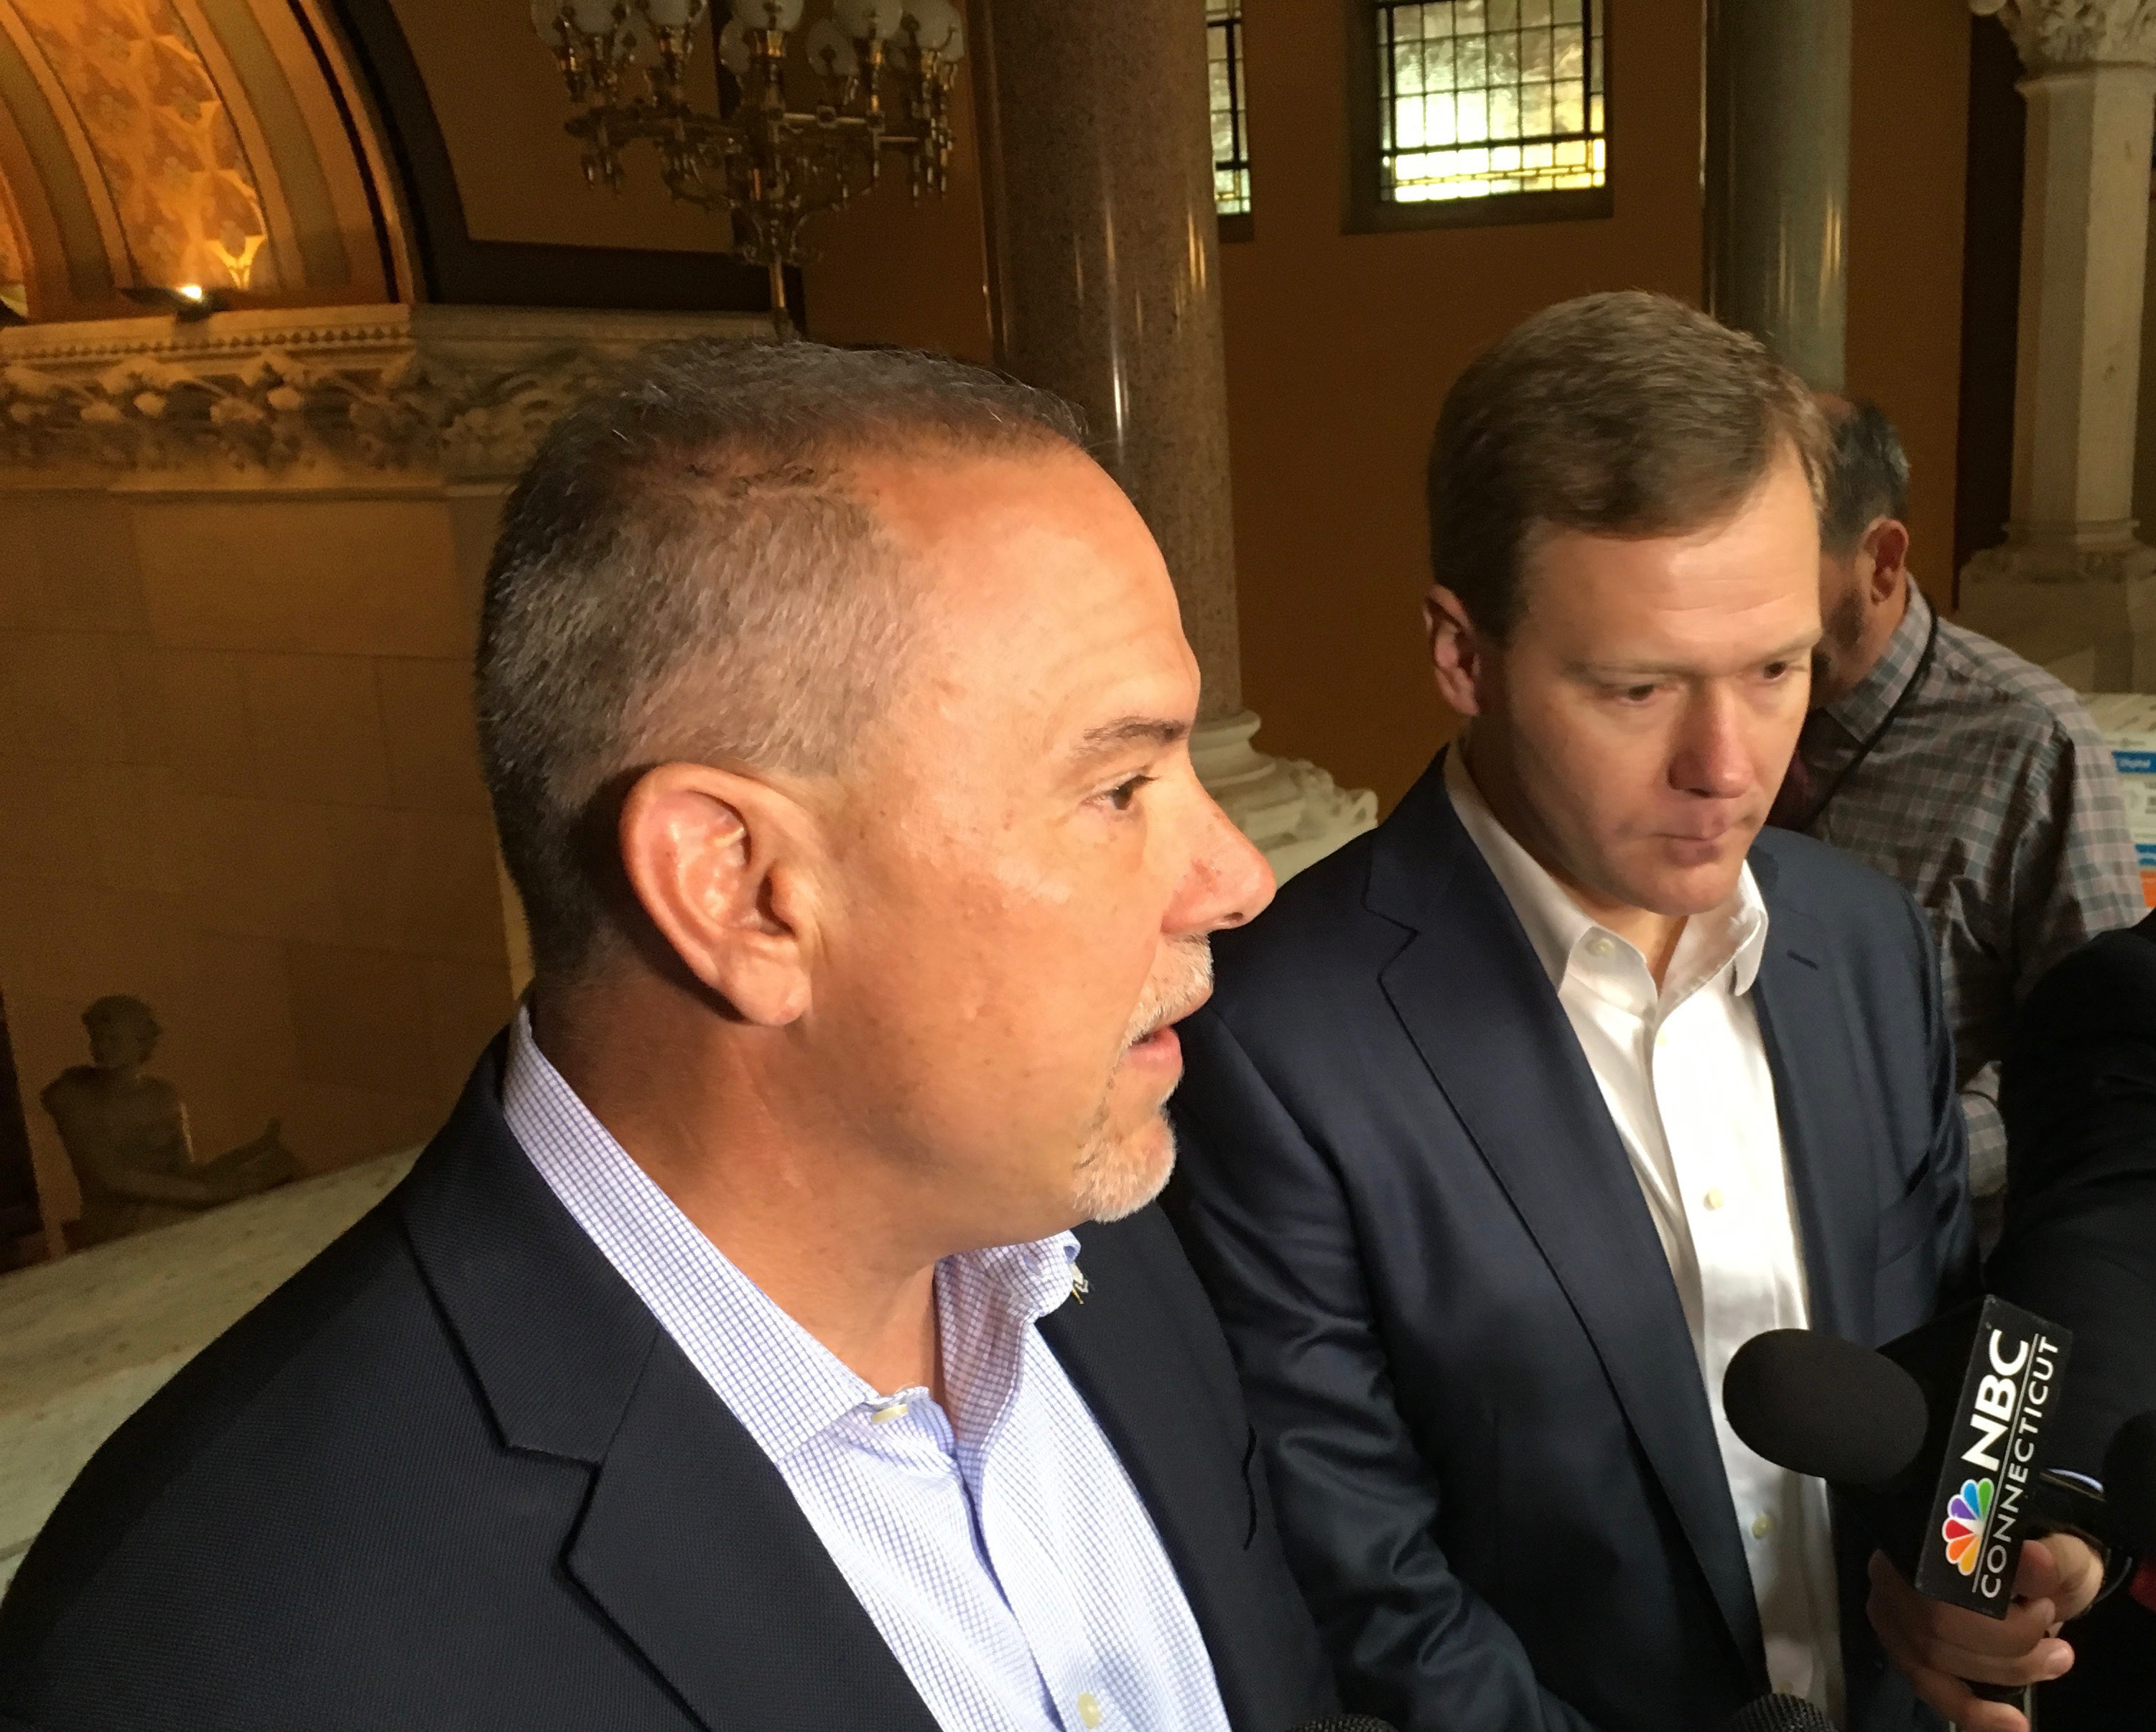 Reps. Joe Aresimowicz and Matt Ritter, the incoming House Democratic leaders, speak at a press conference Thursday. | Mark Pazniokas, The Connecticut Mirror